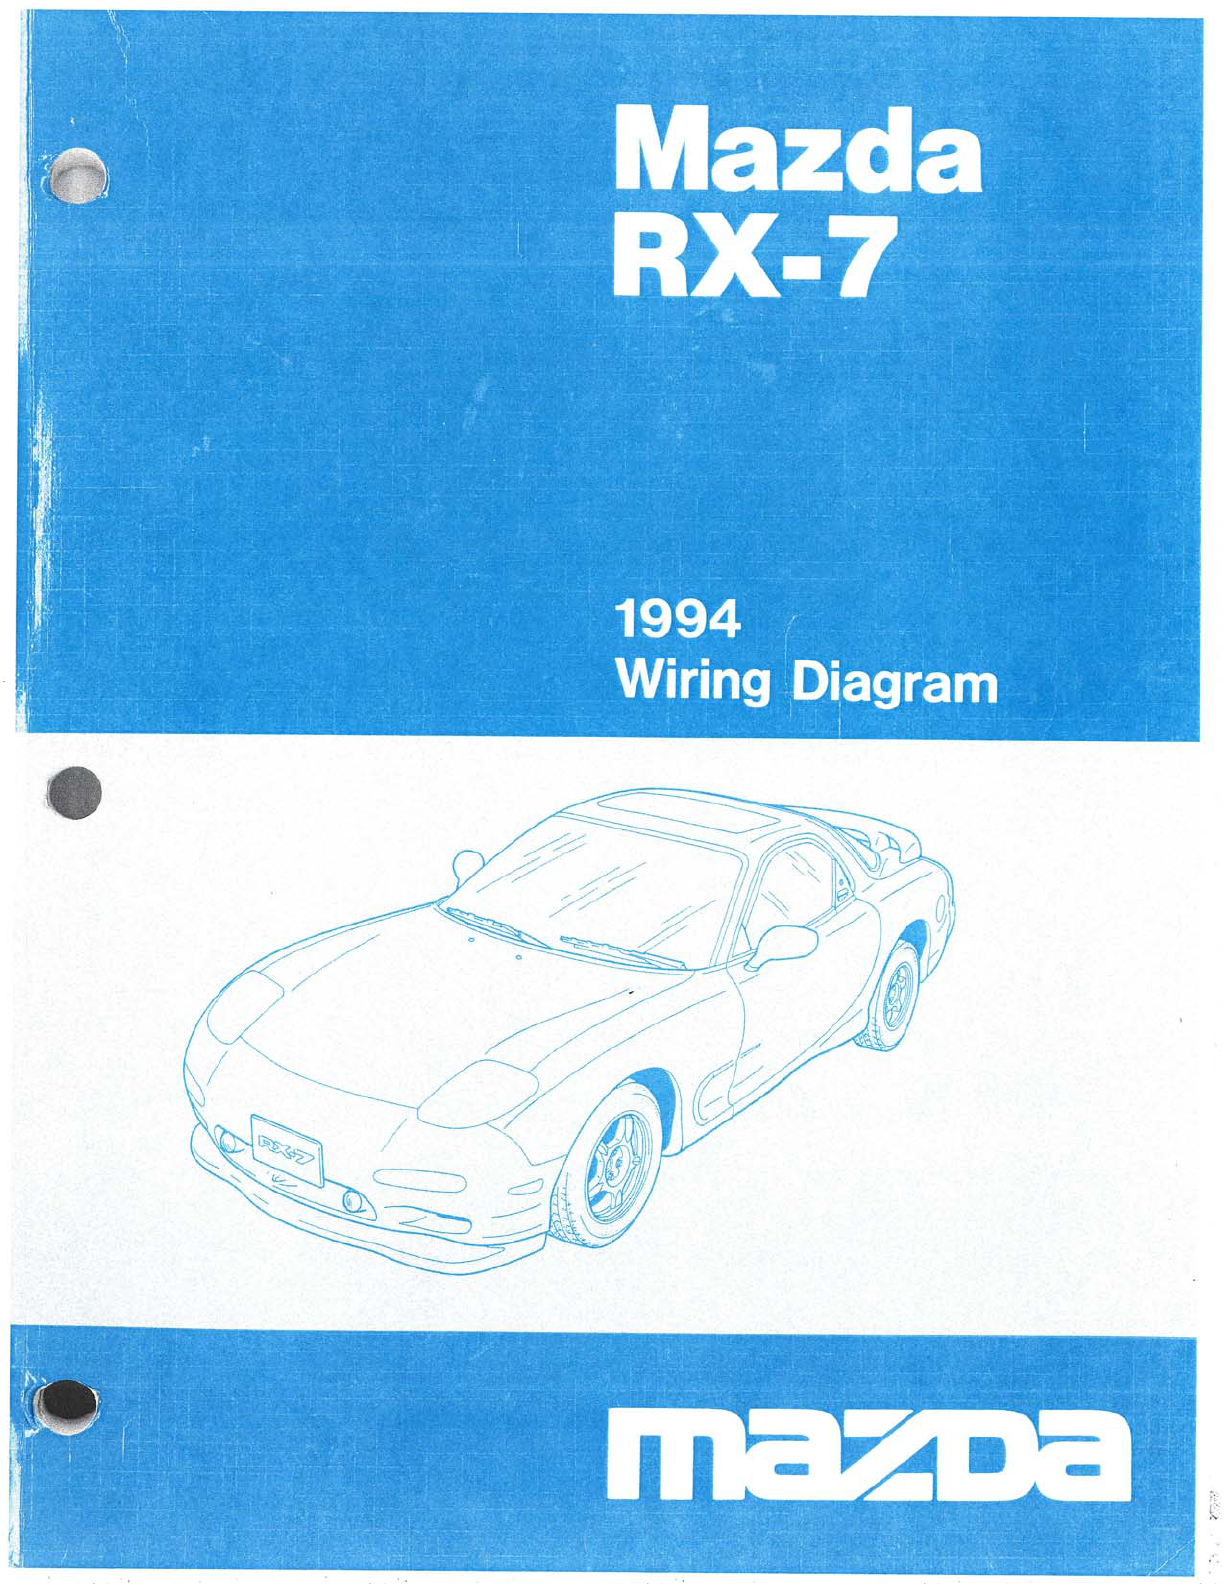 mazda rx7 1994 misc documents wiring diagram pdf rh manuals co